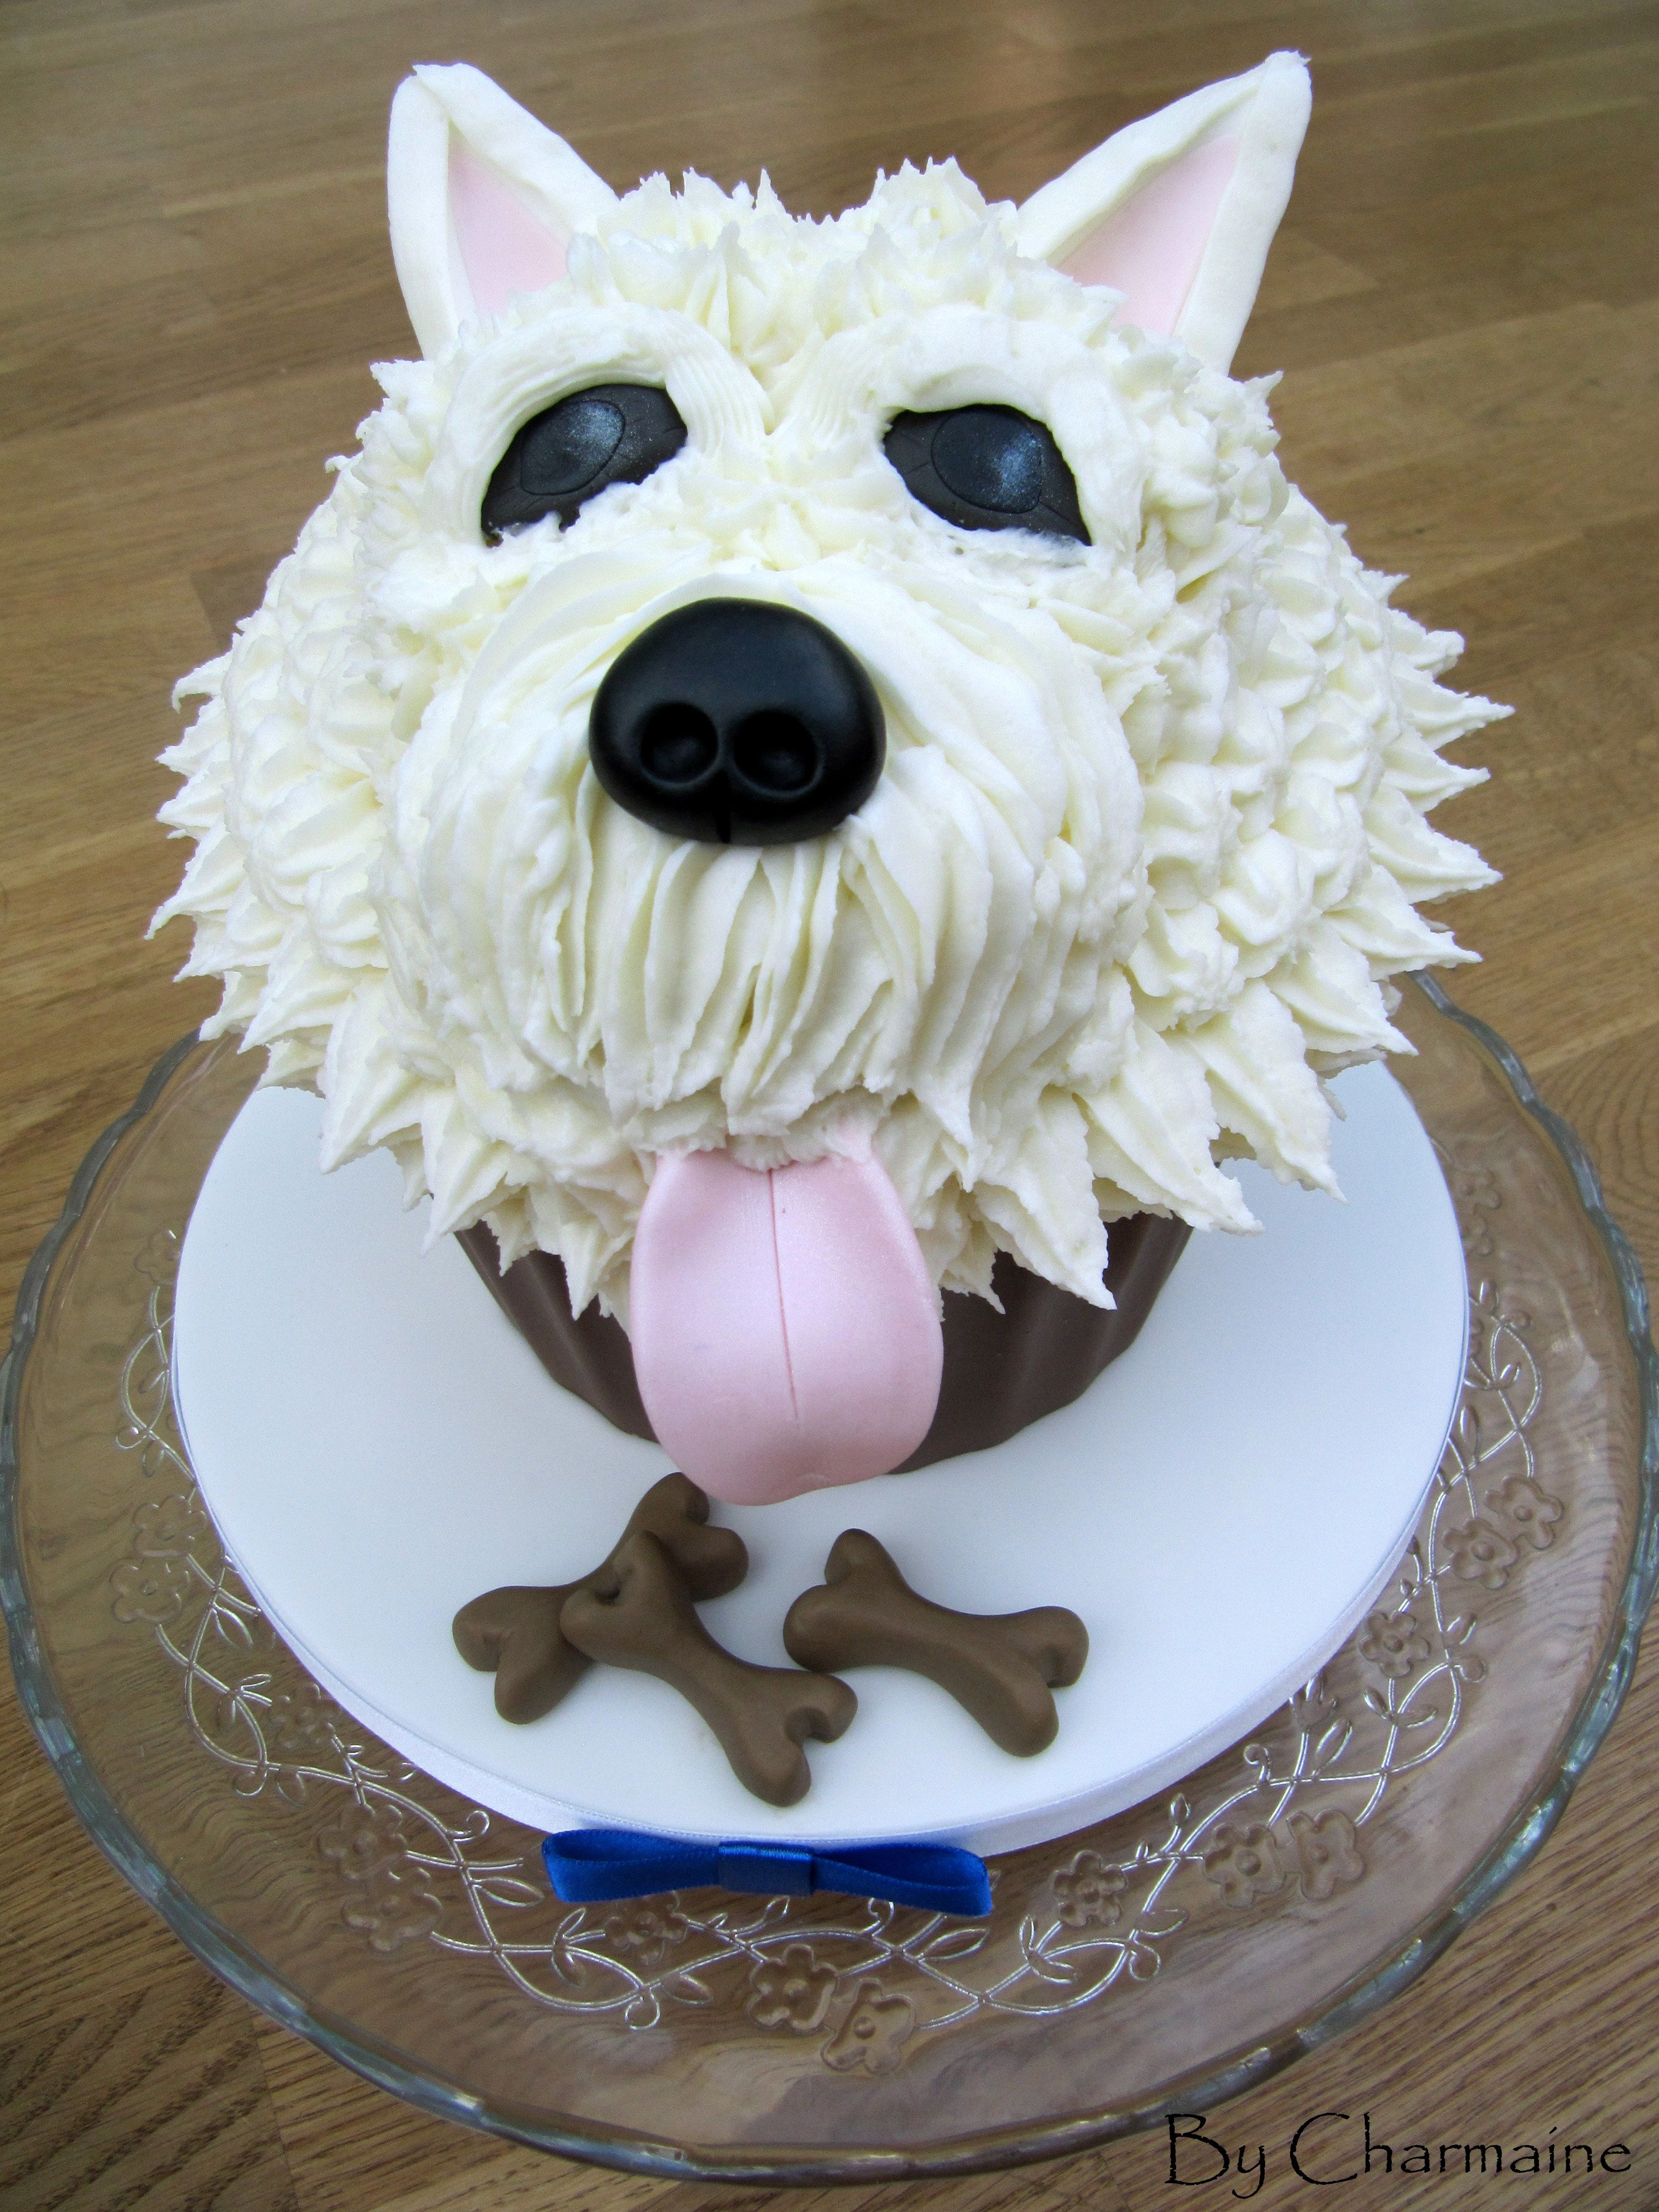 We Loved Making This Giant Westie Cupcake For A Dog Lover